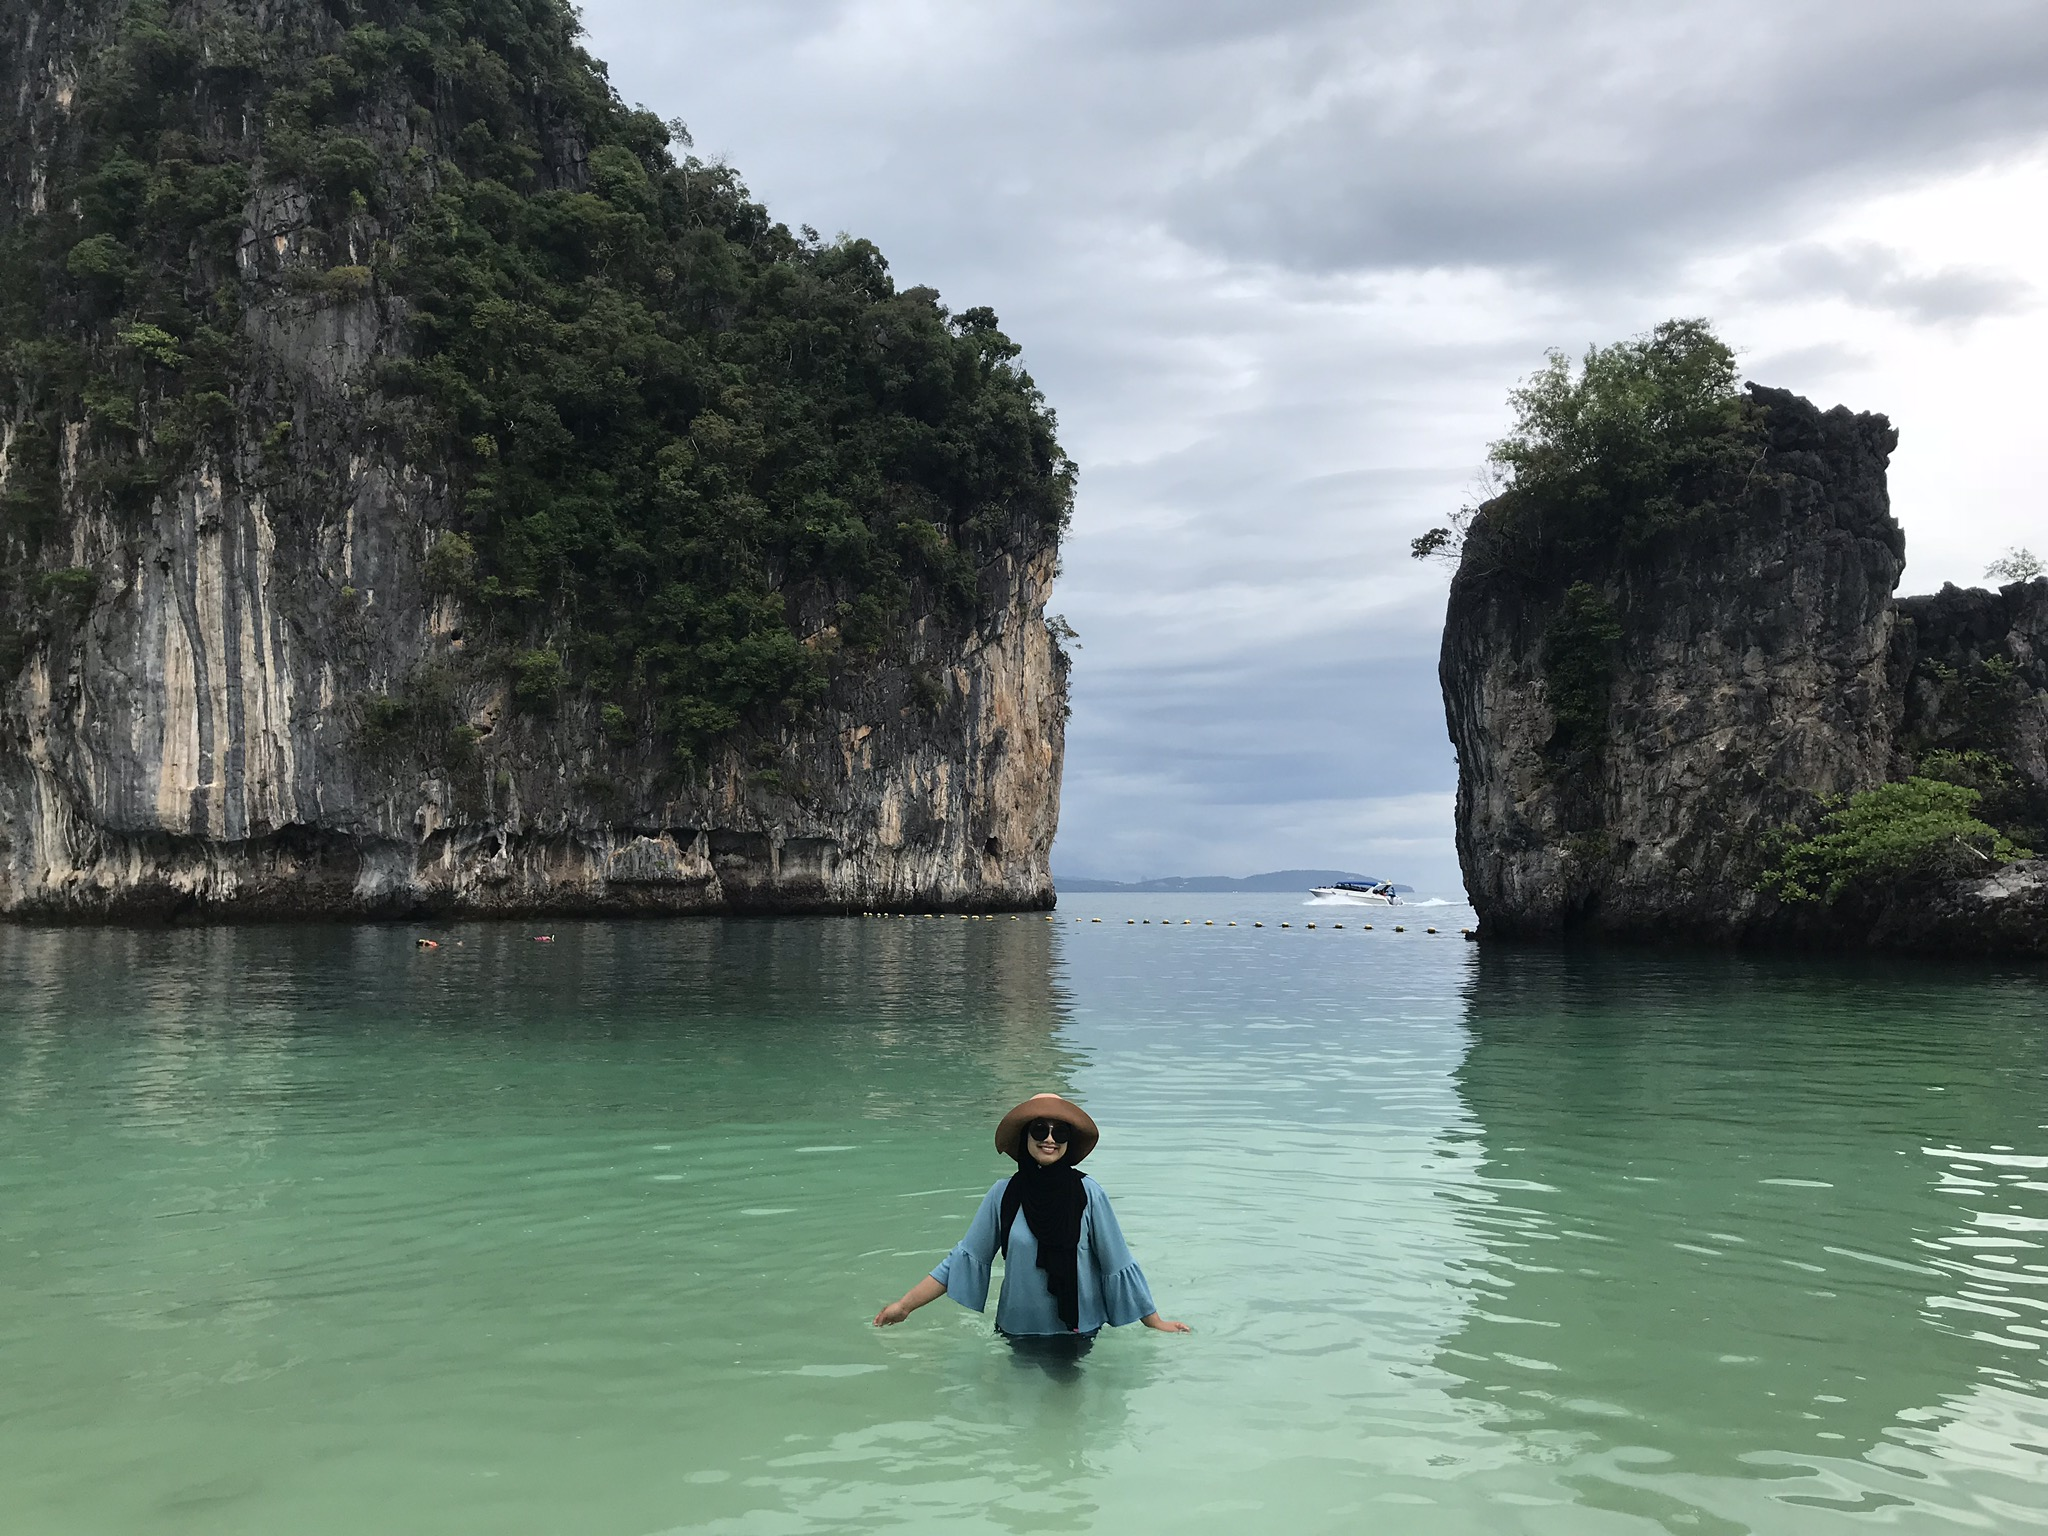 All smiles with my floppy hat because we had Hong Island to ourselves.